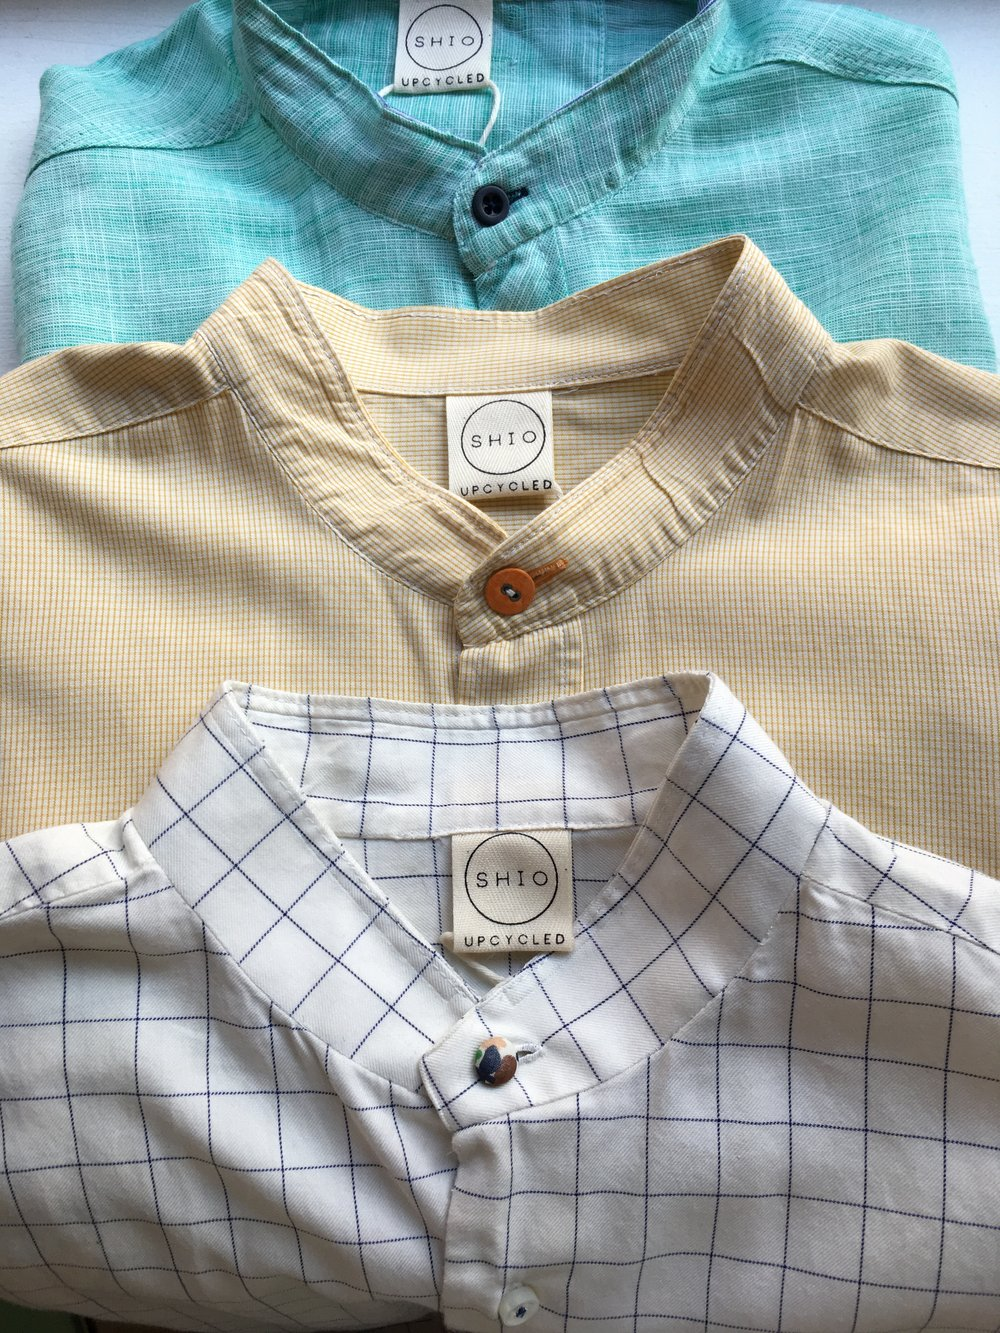 Upcycled Mens Shirts:  I remove the collar, sometimes resize them, add a contrast button and thread.